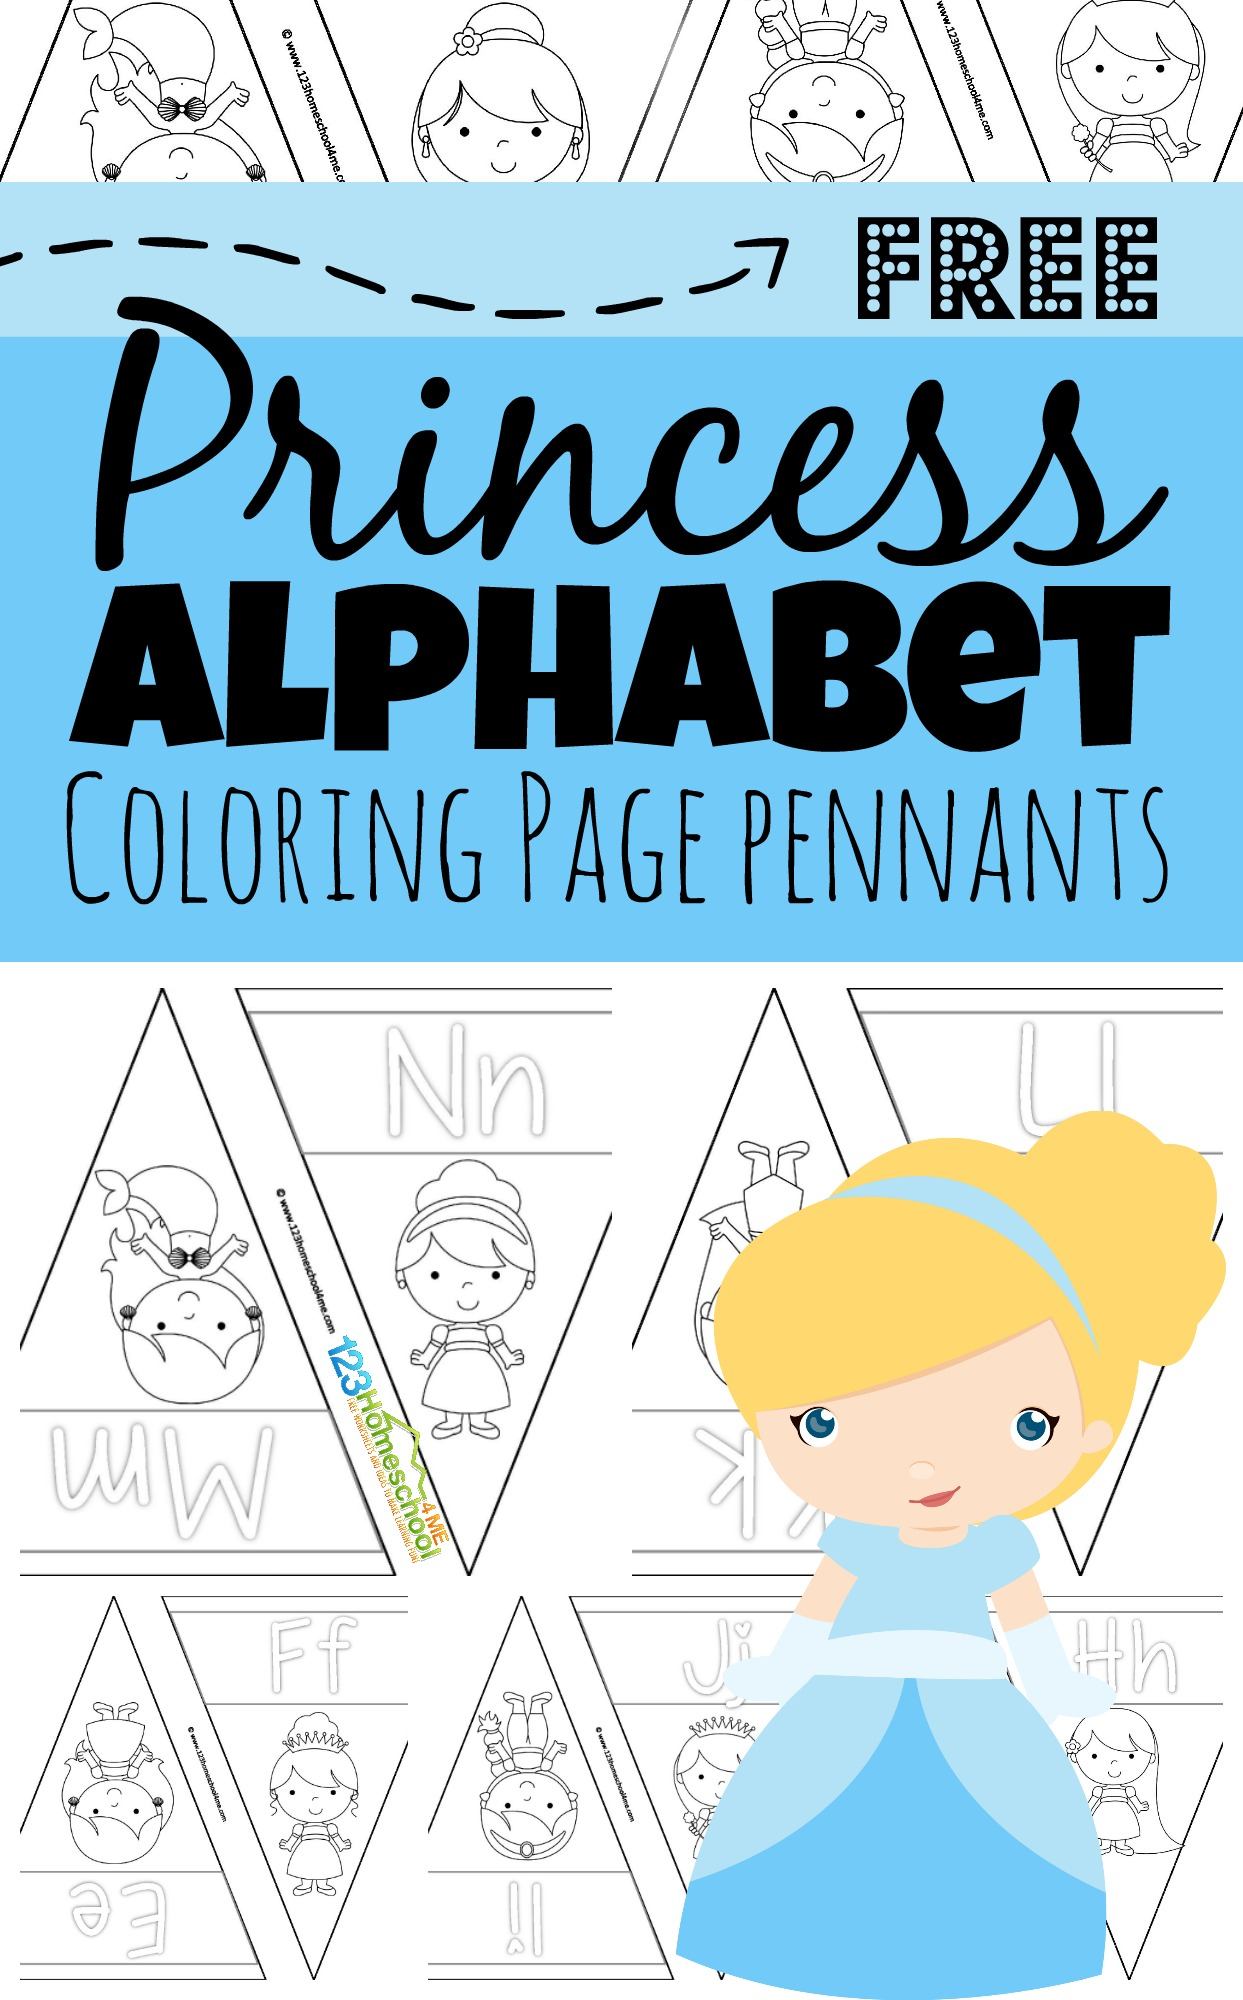 Girls are going to love coloring these super cute and simple disney princess alphabet coloring pages. These free printable, princess themed, alphabet pennants are a great way for toddler, preschool, pre k, kindergarten, and first grade students to learn their ABCs! Simply decorate these pennants and hang them on your wall to reference how to make upper and lowercase letters from A to Z.